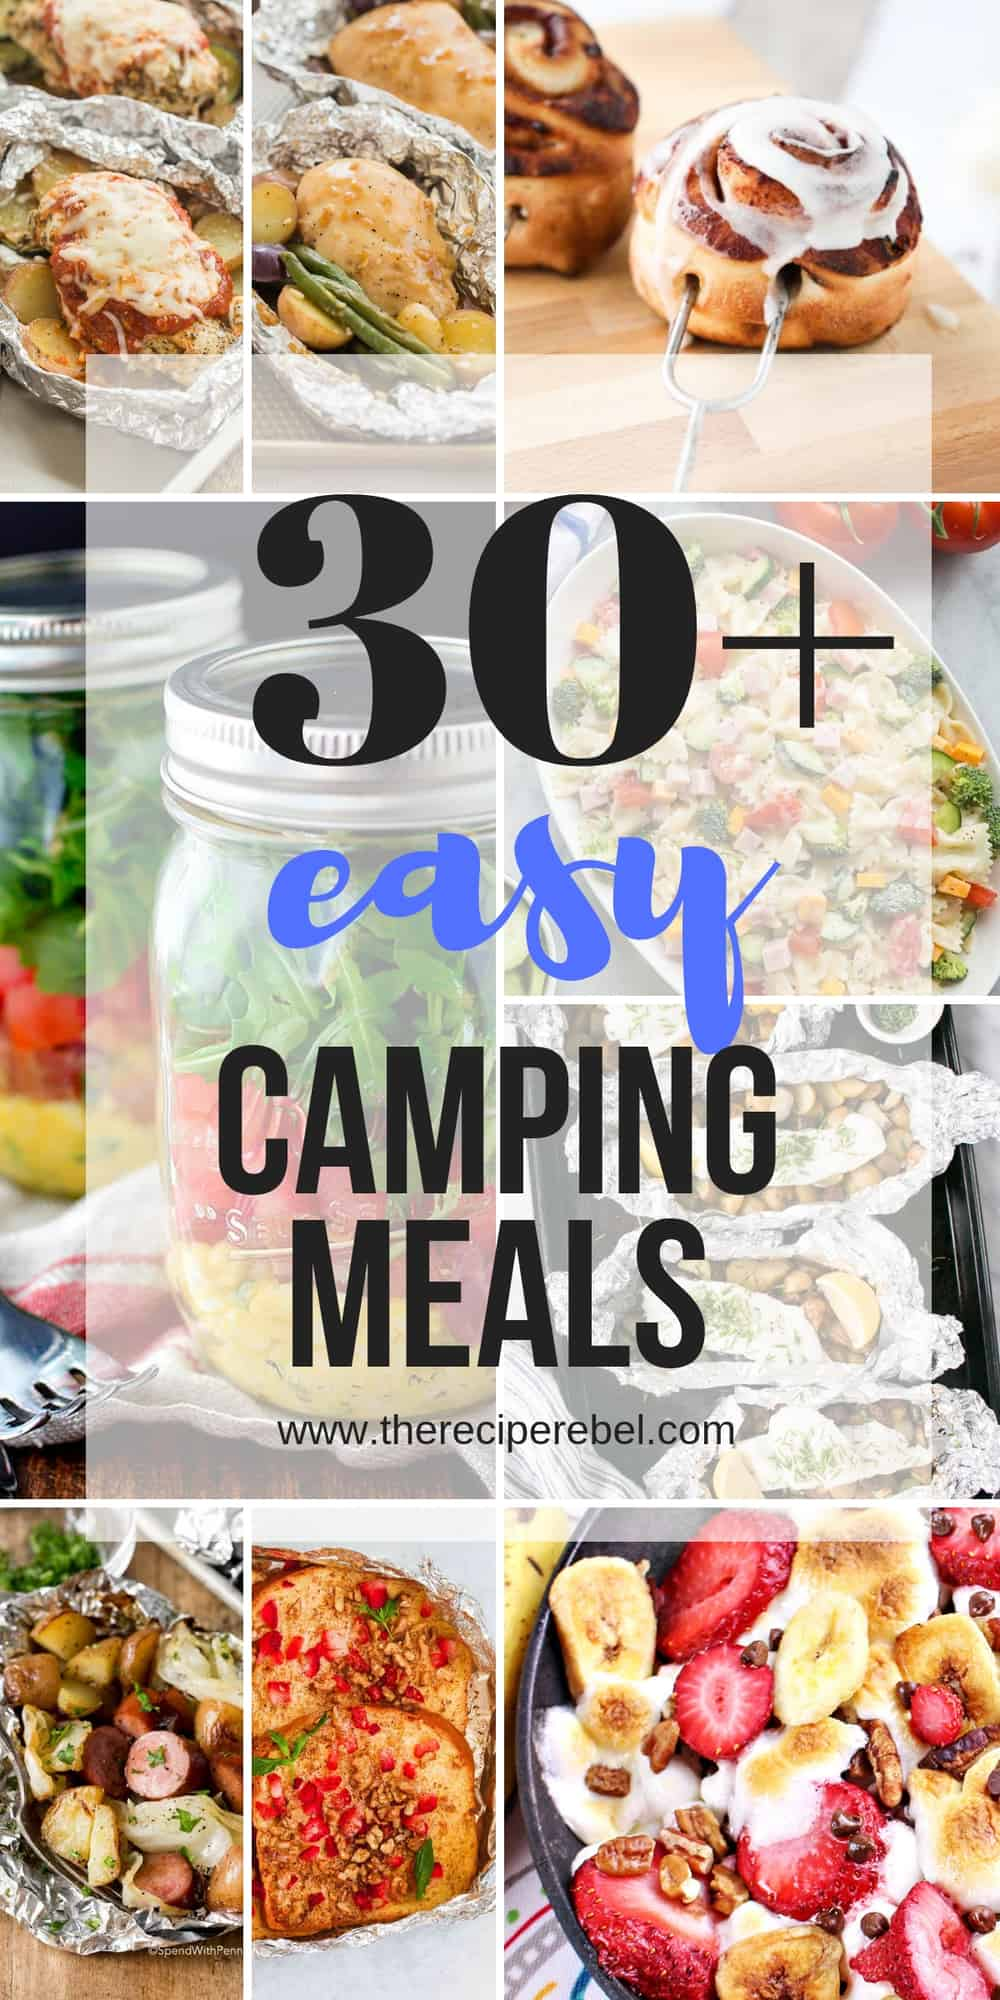 easy camping meals collage with title 30 easy camping meals in black text